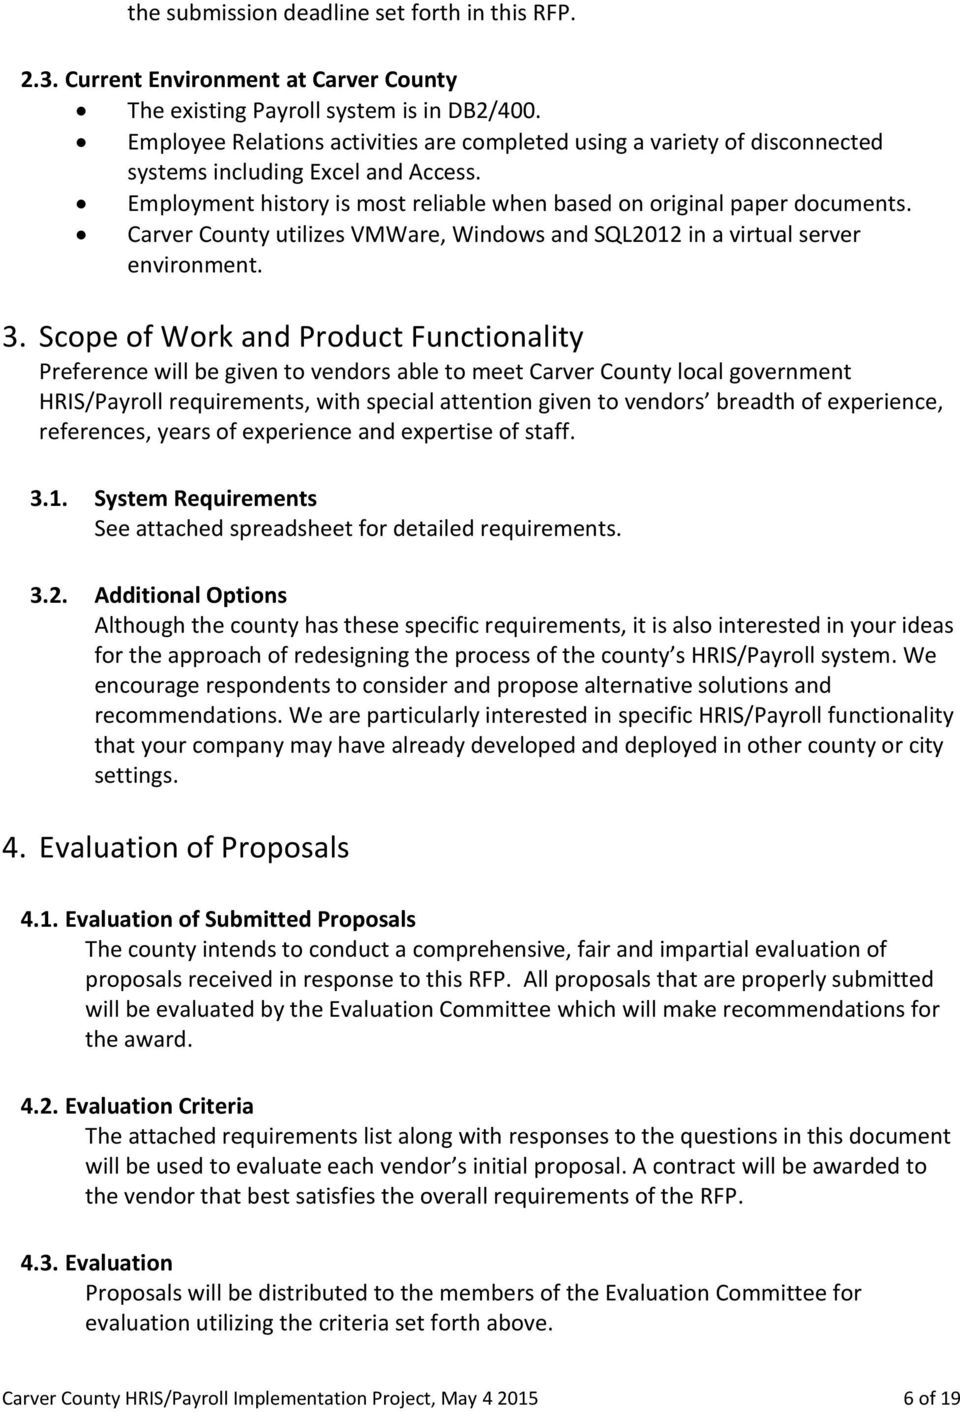 riordan manufacturing financial state Essay on riordan manufacturing - situation analysis issue and opportunity identification riordan manufacturing is a global plastics producer employing 550 people with projected annual earnings of $46 million the company is wholly owned by riordan industries, a fortune 1000 enterprise with revenues in excess of $1.